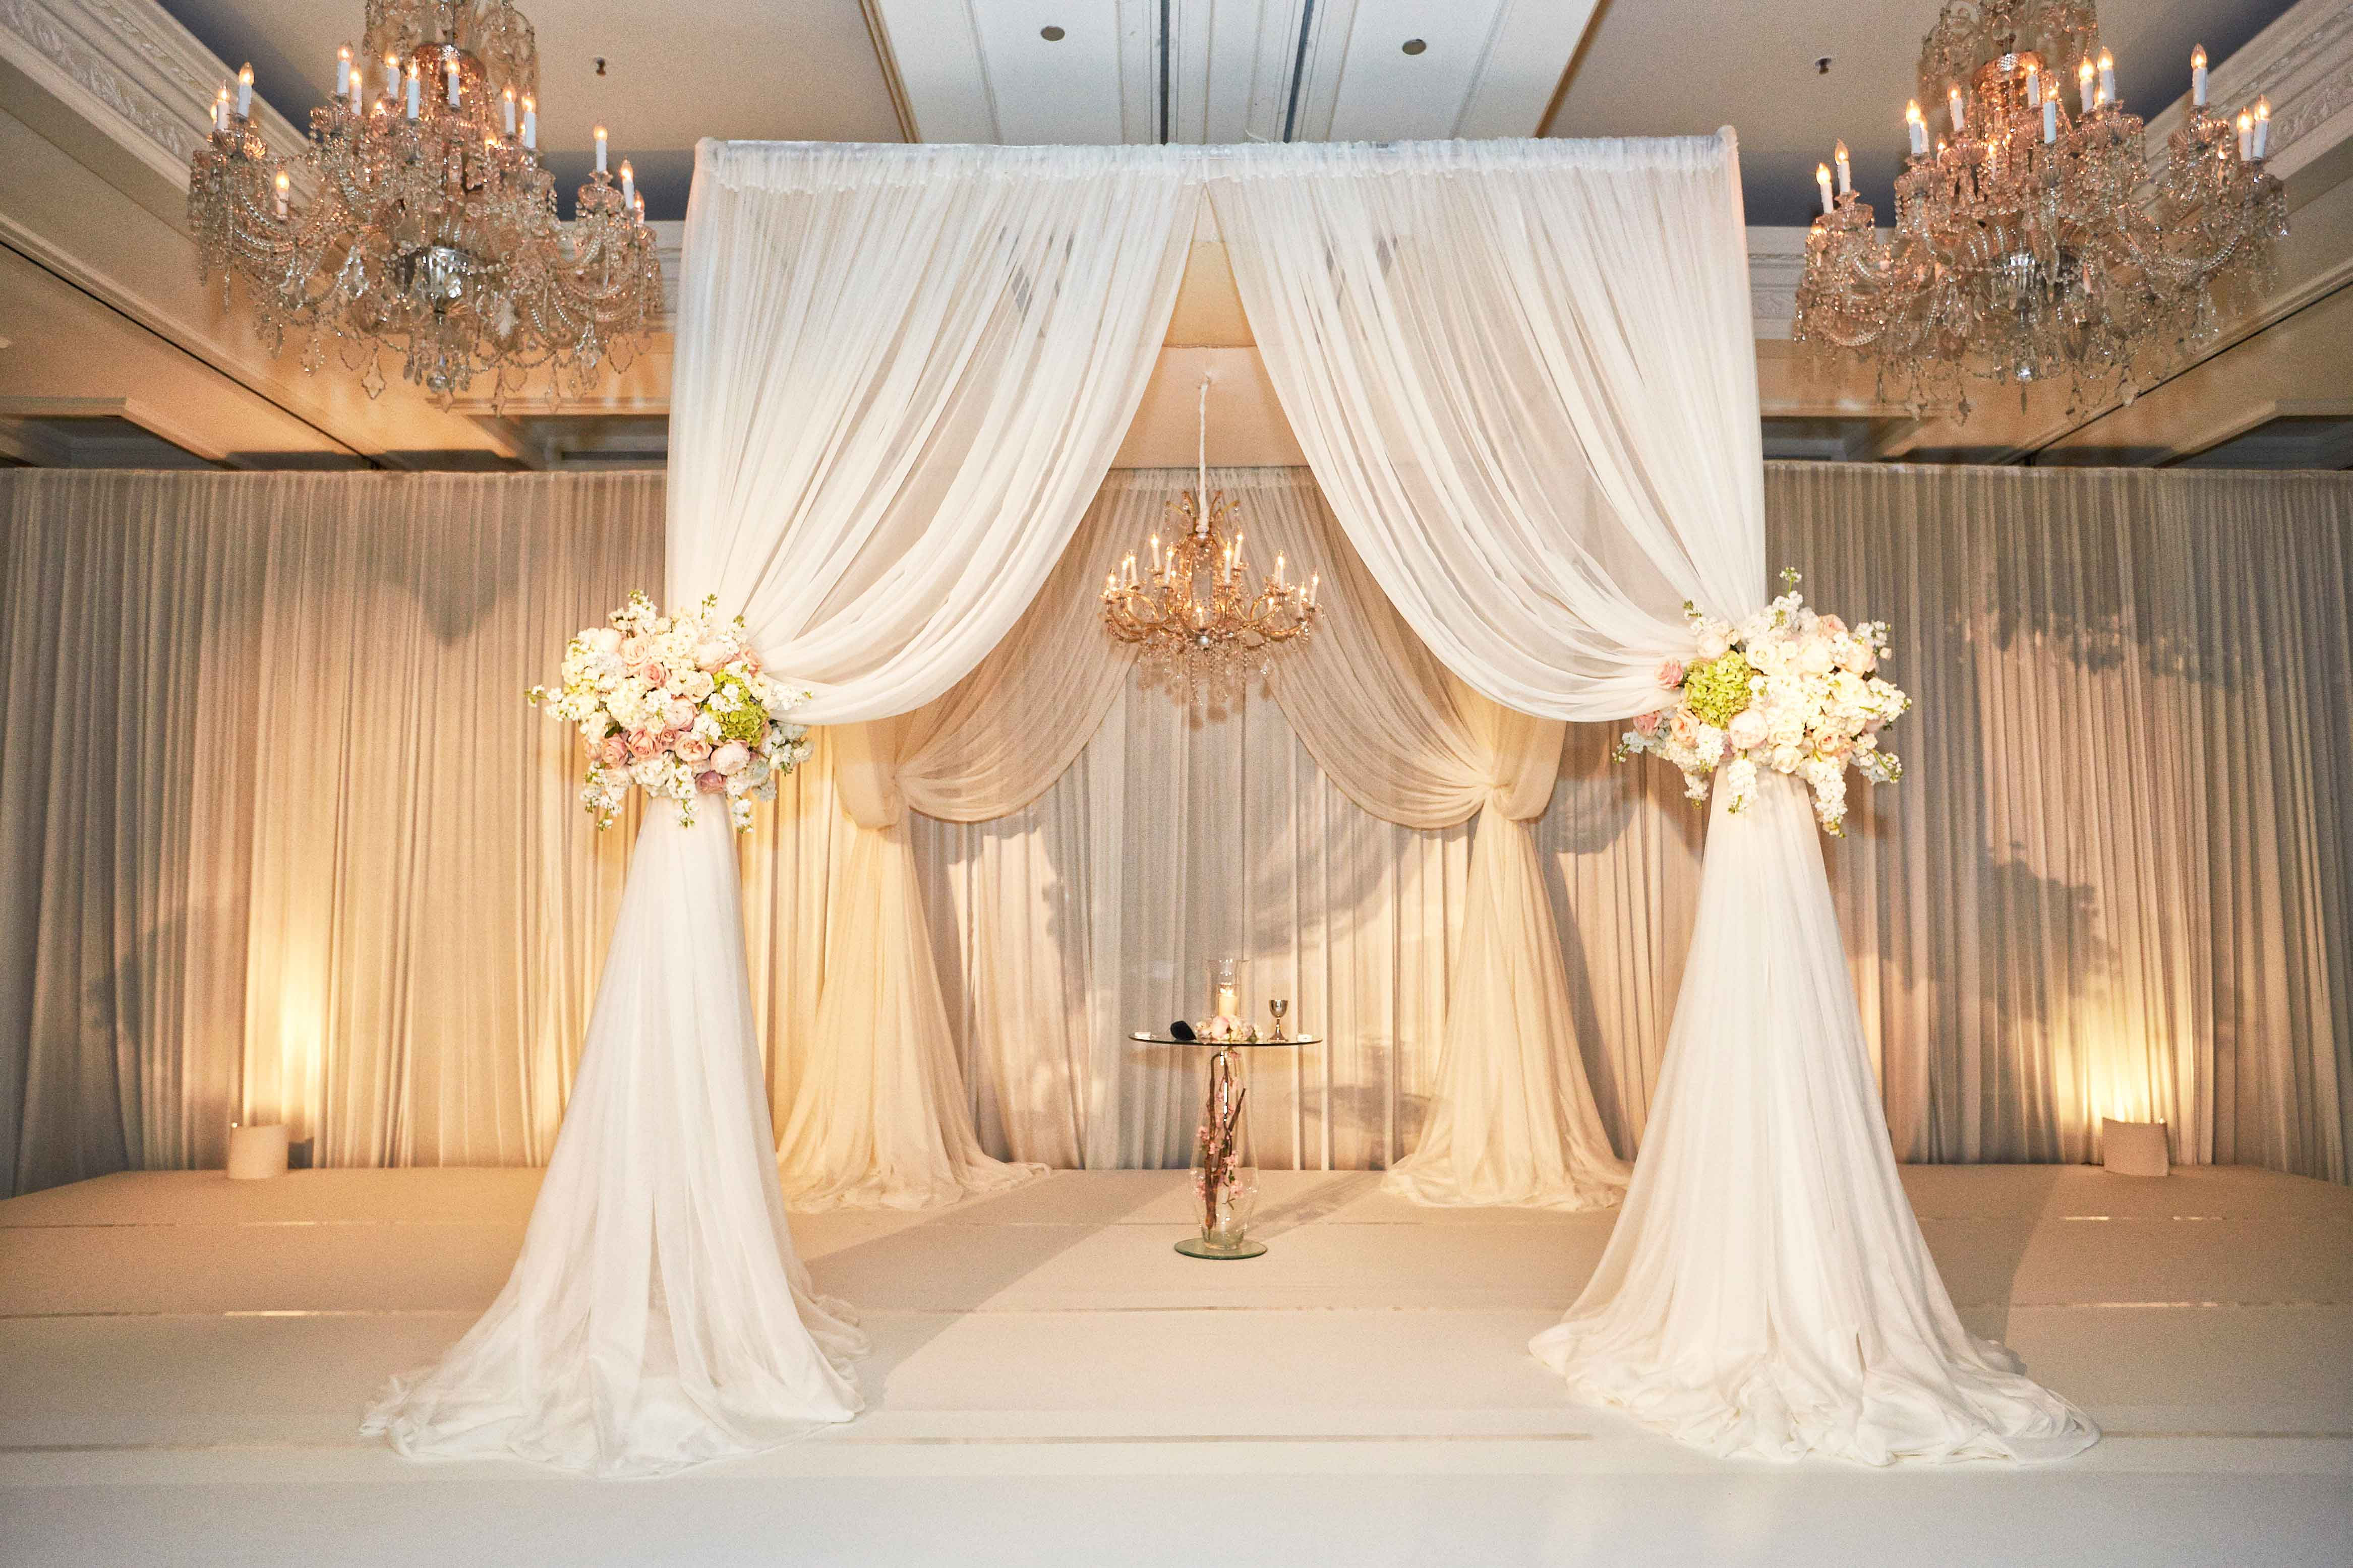 White chuppah at Chicago ceremony